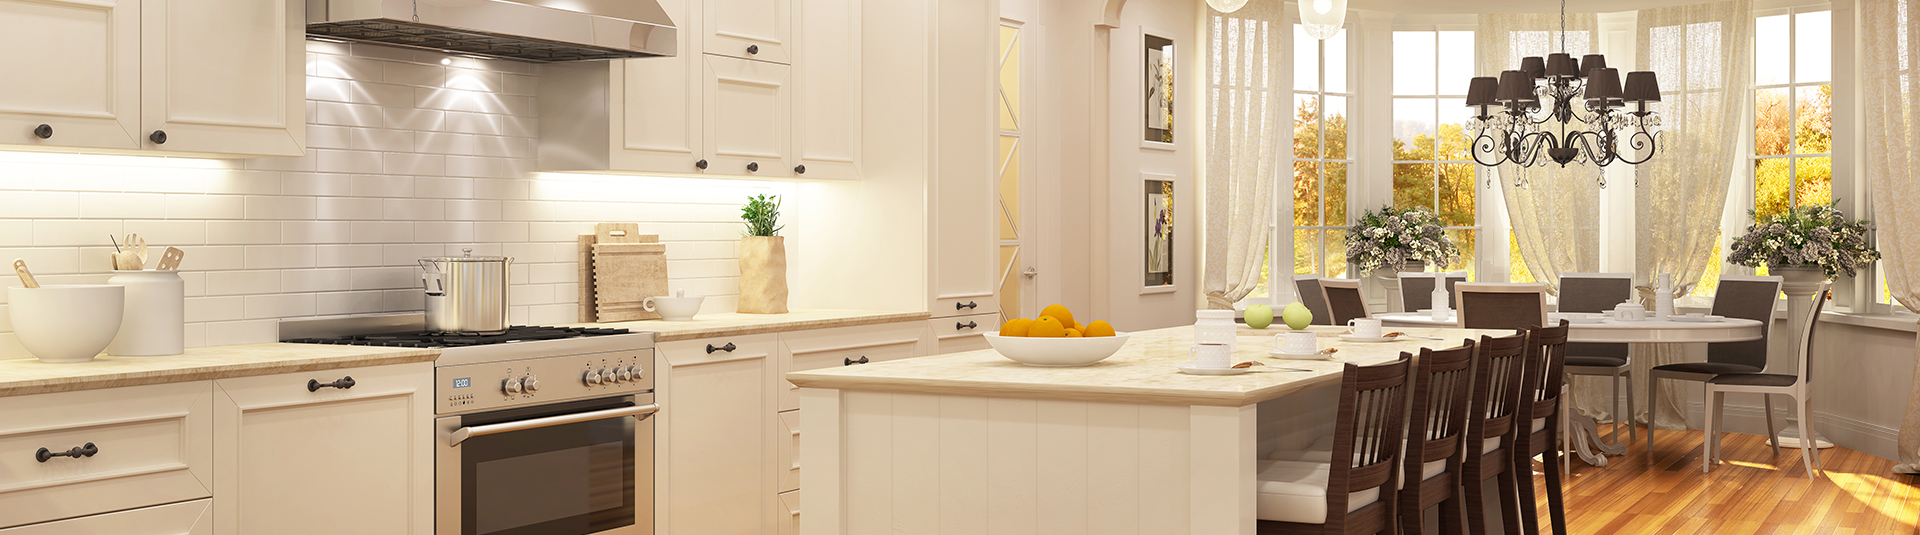 kitchen and bath cabinets design & remodeling rockford il. benson stone